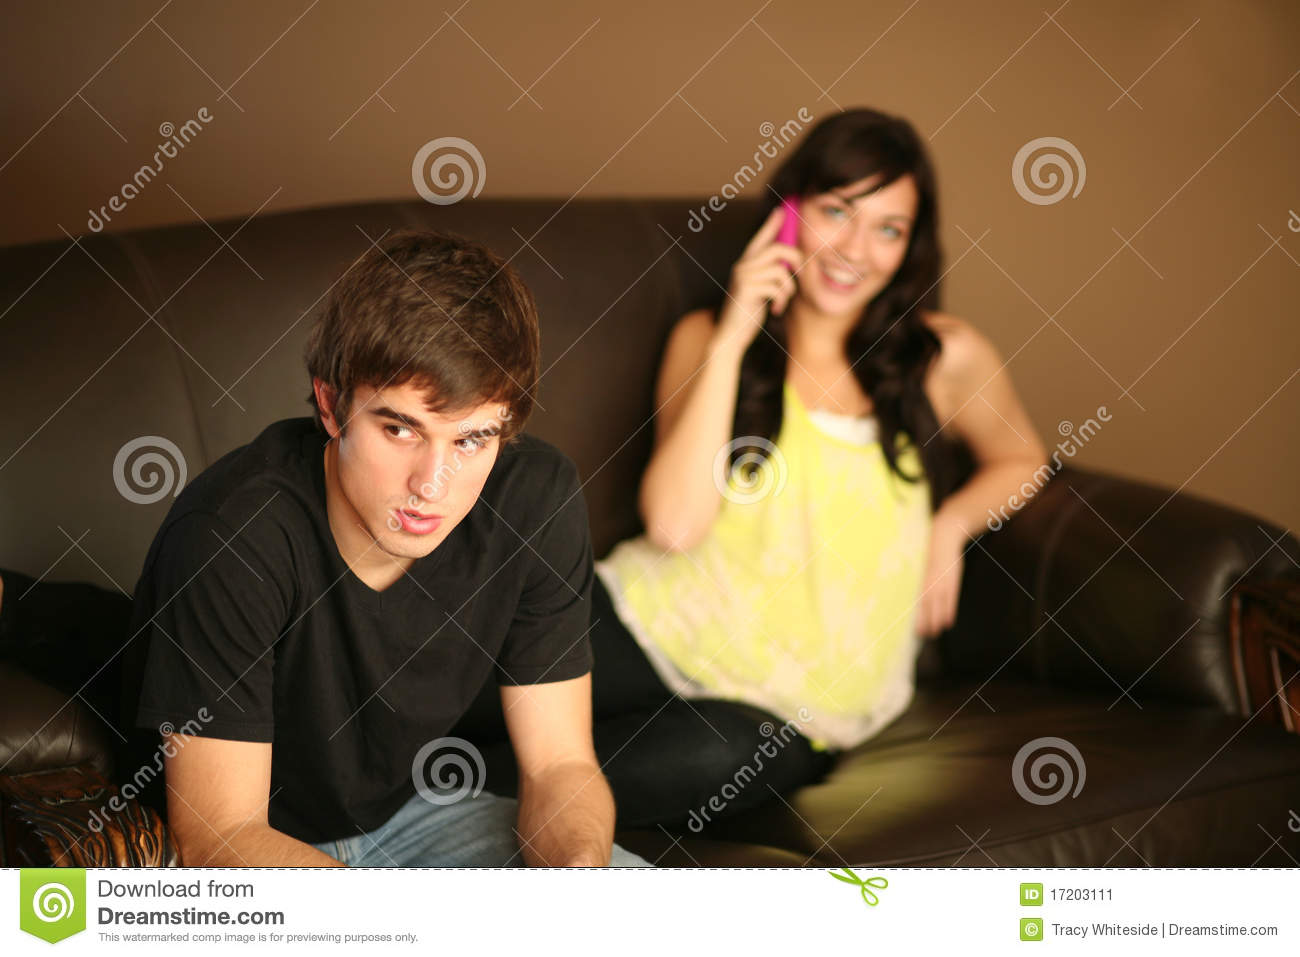 Angry young man ignored by girlfriend on phone